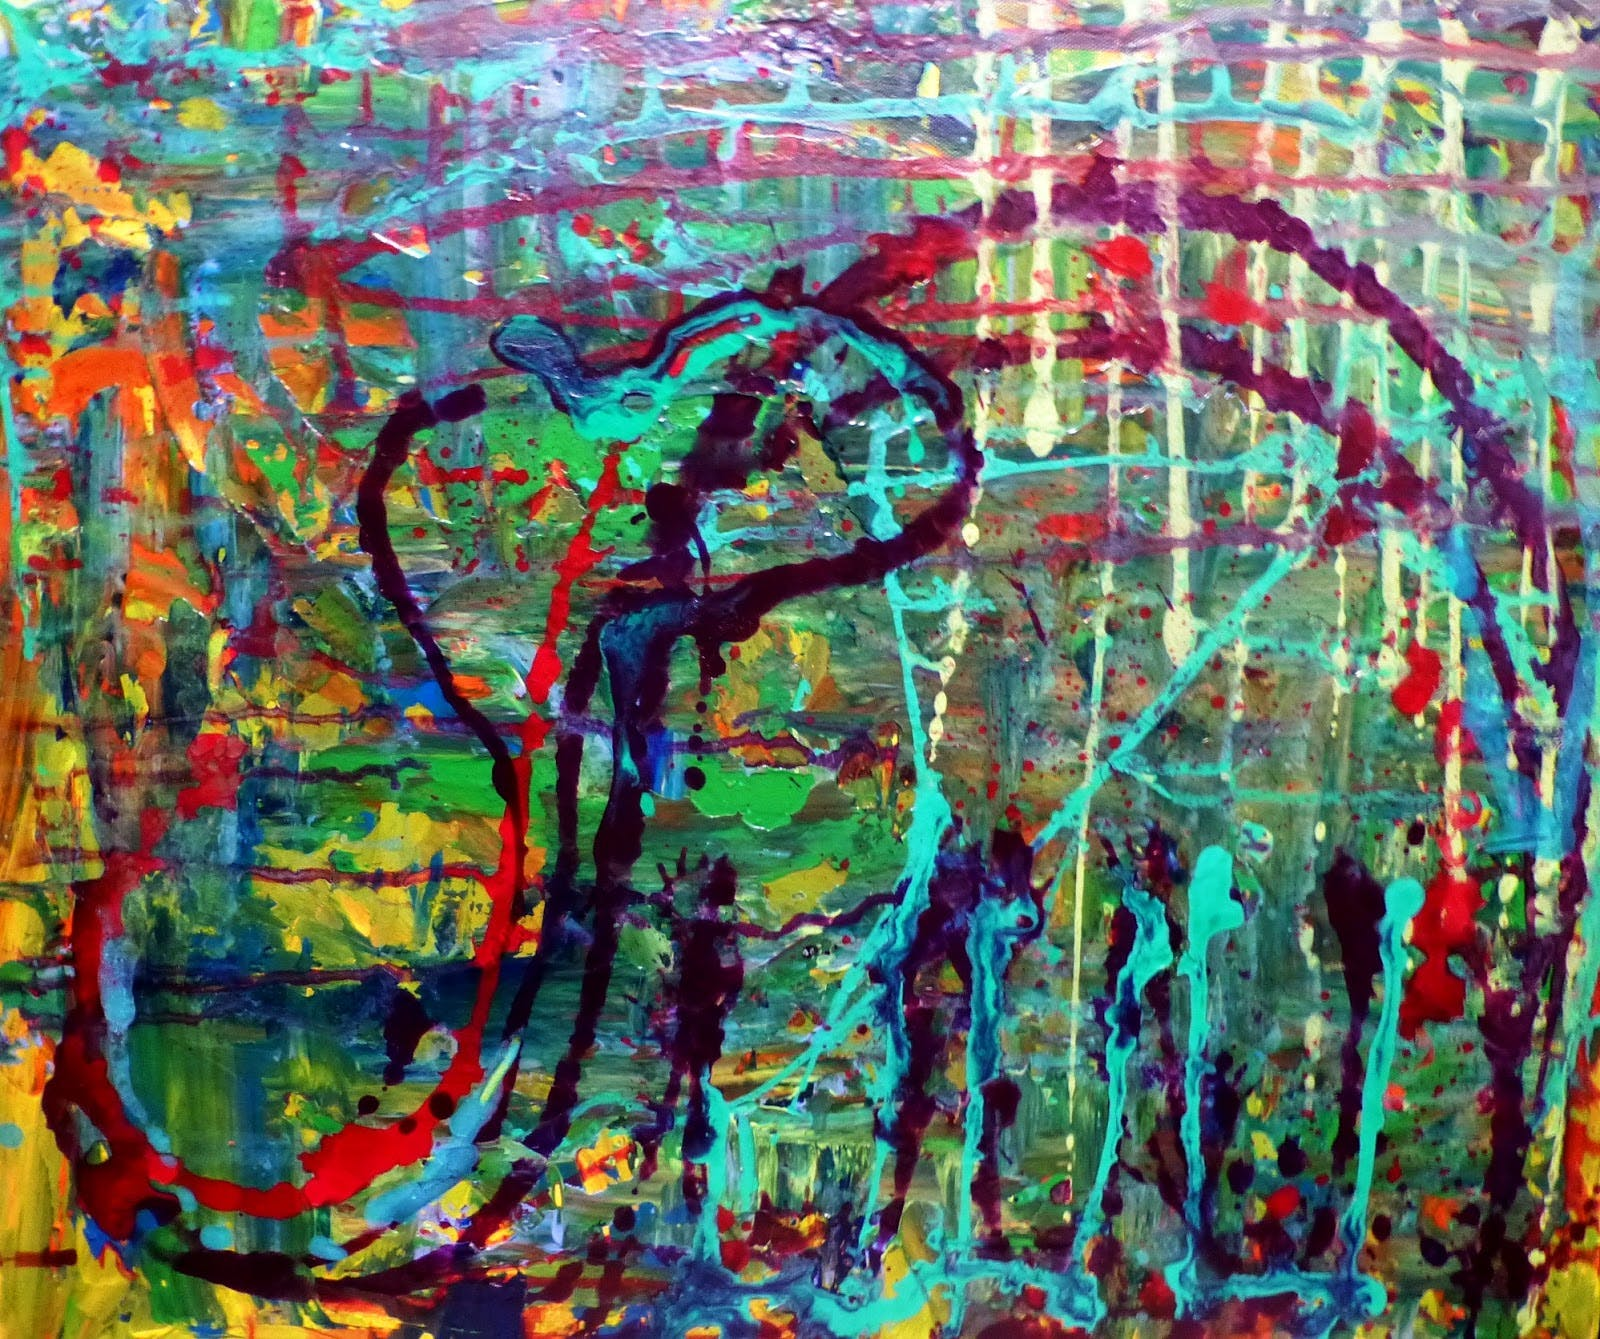 Painting by Ruby the elephant